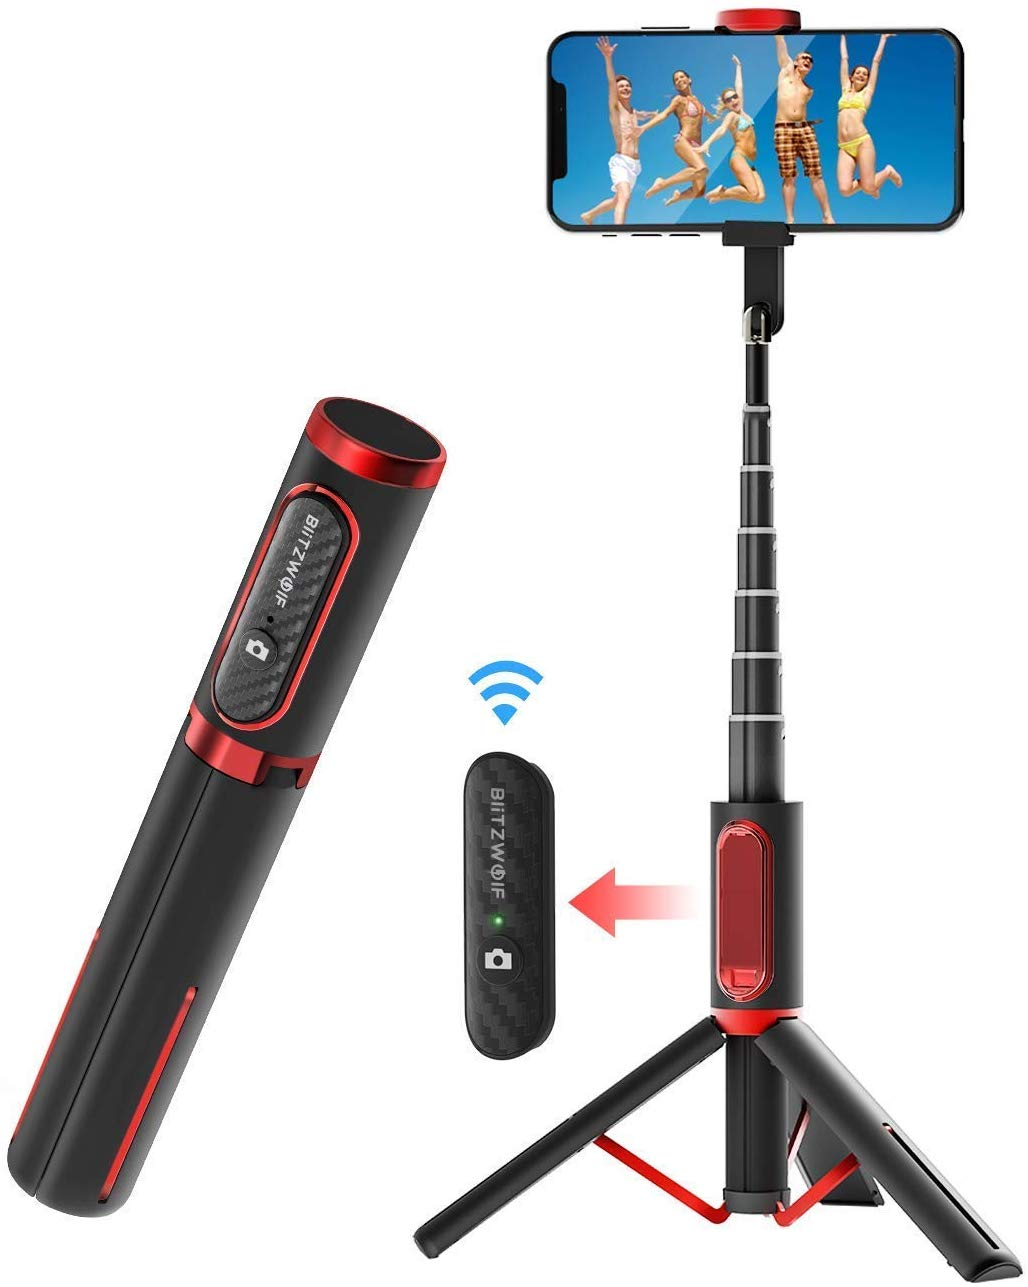 http://BlitzWolf's%20all%20in%20one%20selfie%20tripod%20in%20a%20black%20and%20red%20color